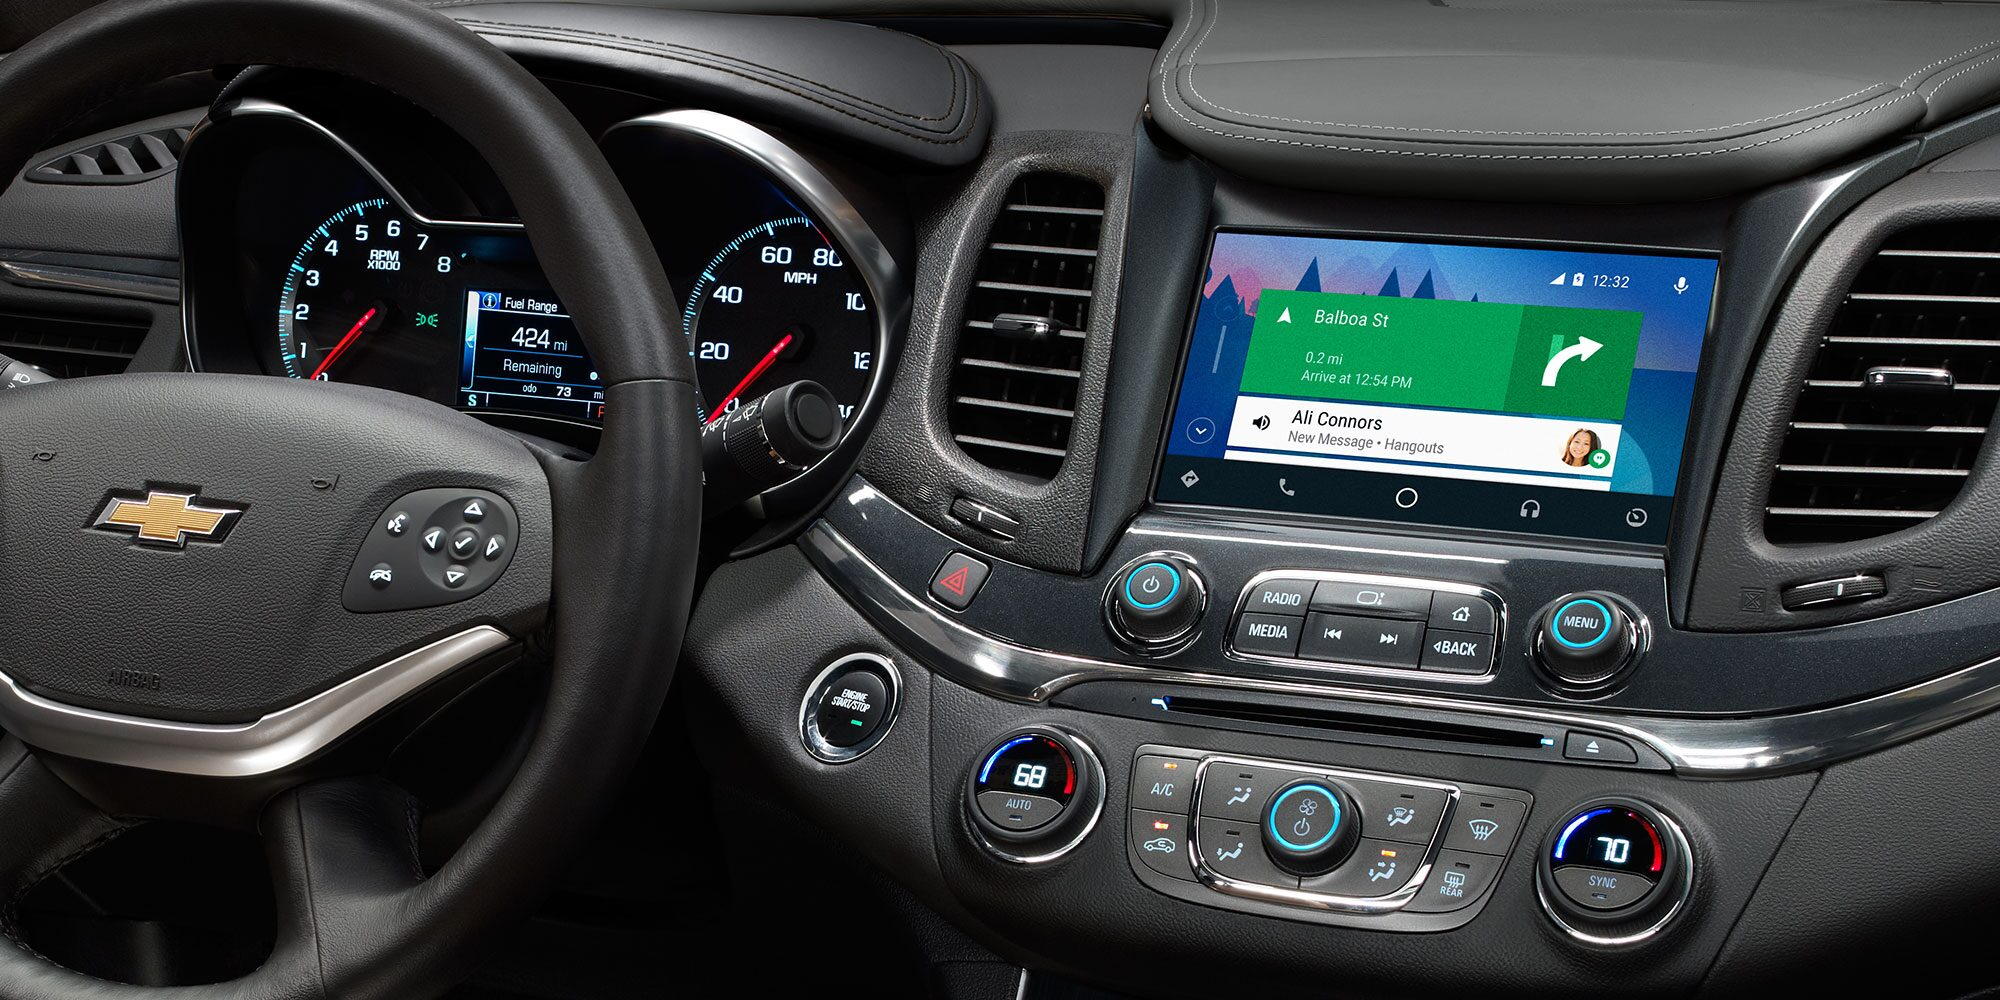 2019 Impala Full Size Car Technology: 8 Inch Diagonal Touch Screen Display Home Design Ideas